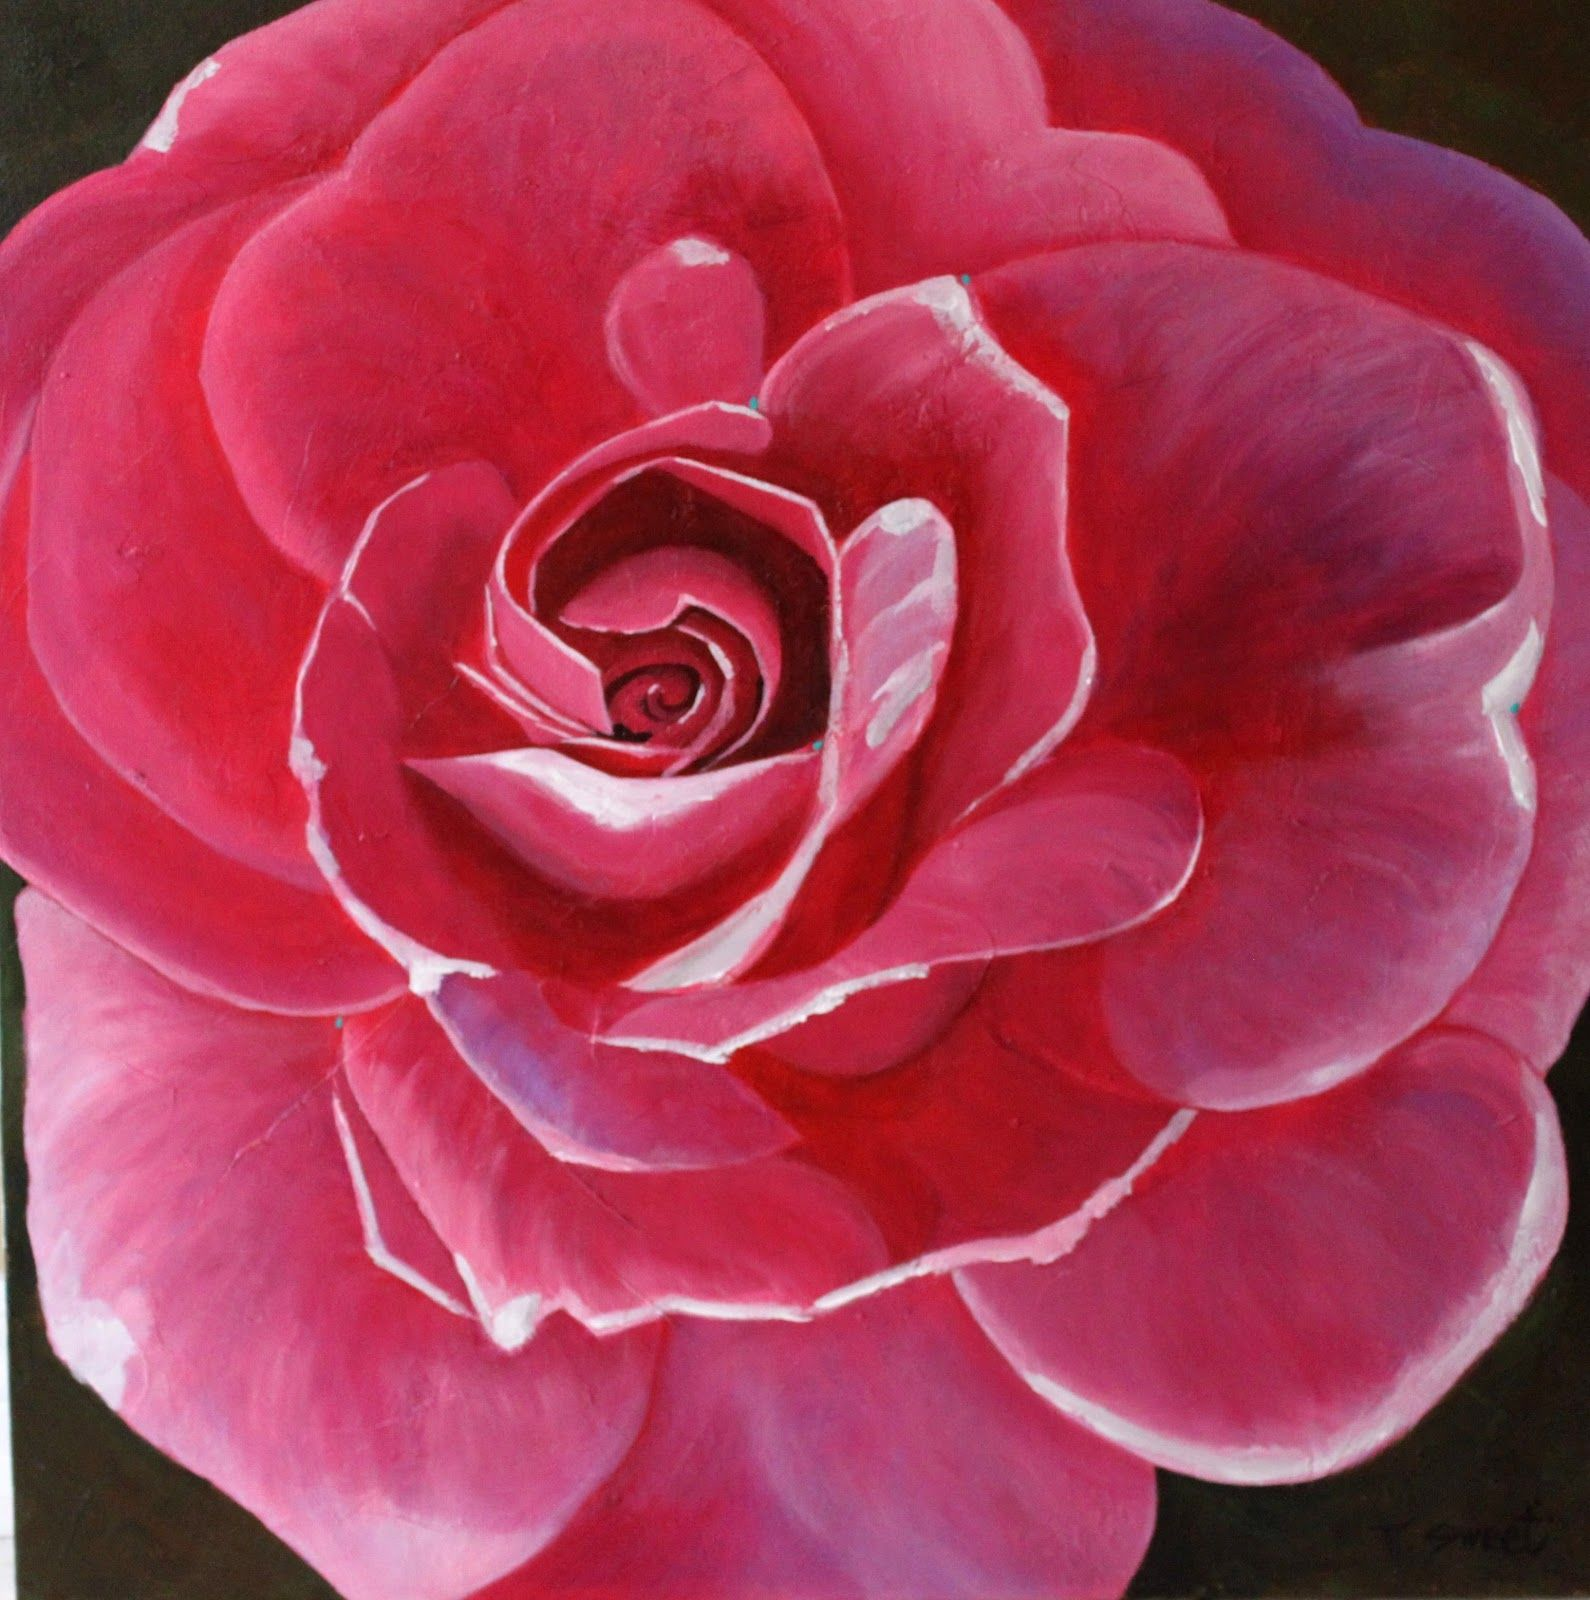 Easy Things To Paint With Acrylics For Beginners: Acrylic Painting For Beginners